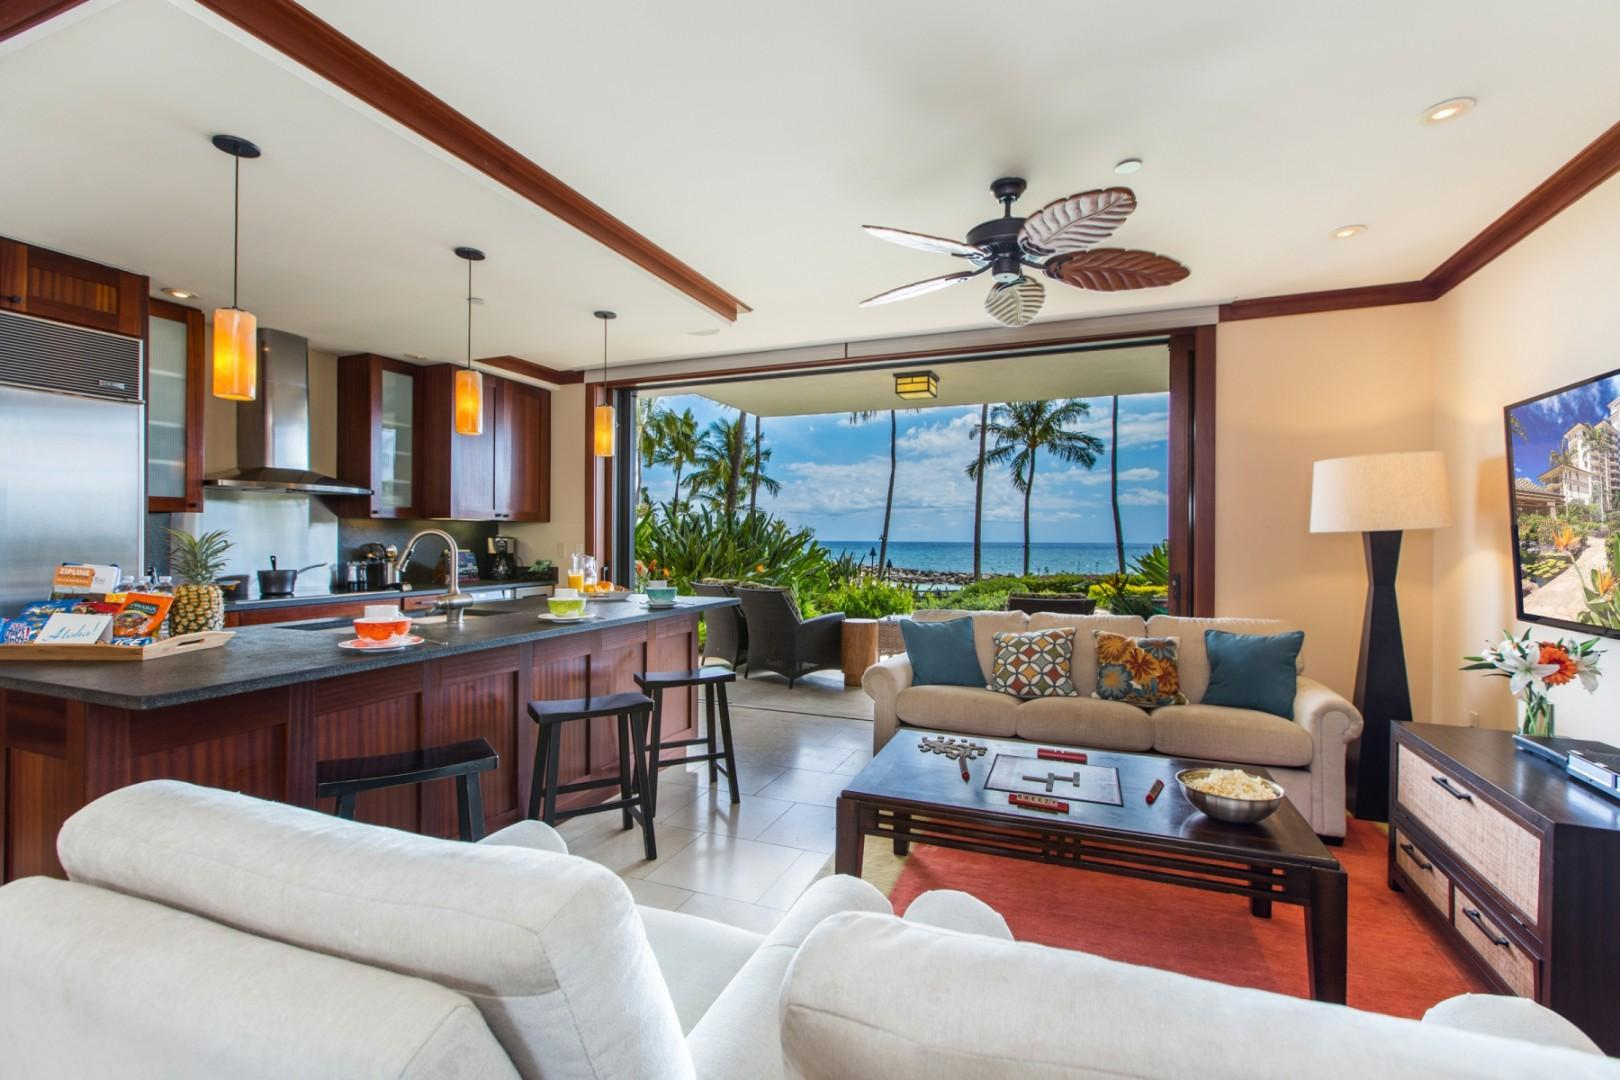 Garden, ocean and sunset views from the comfort of your luxury Villa